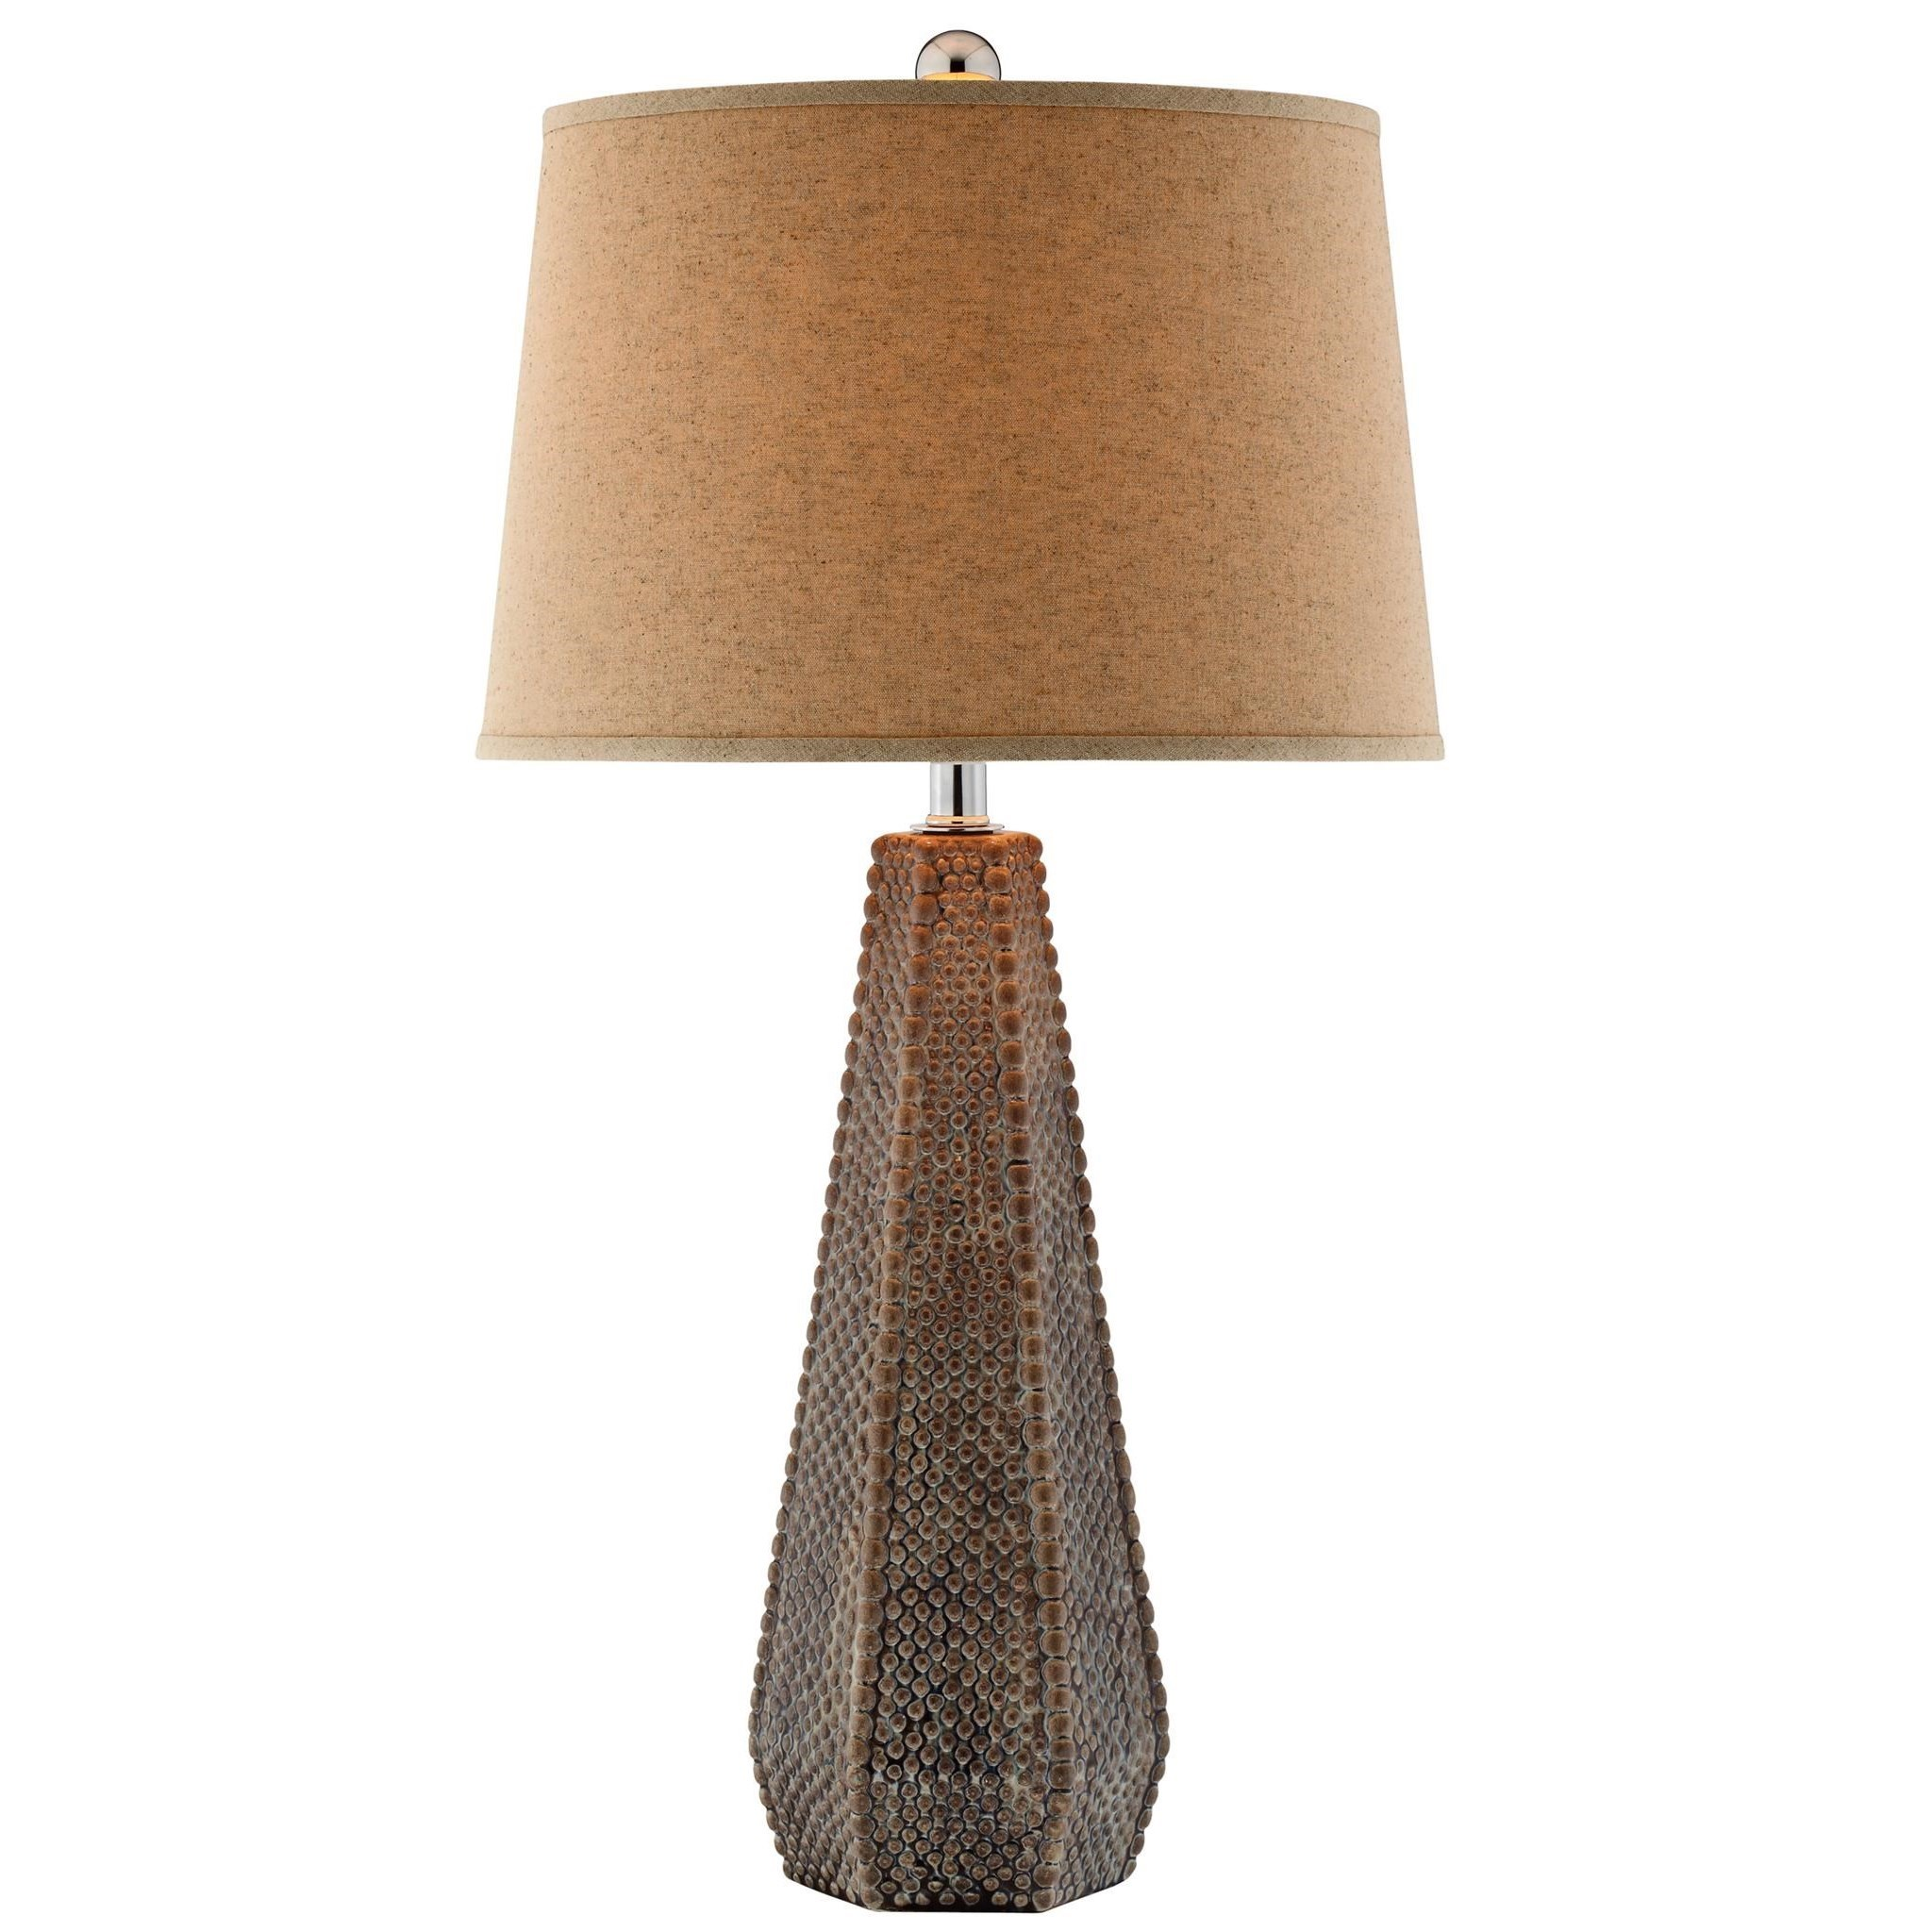 Lamps Halifax Table Lamp by Stein World at Westrich Furniture & Appliances